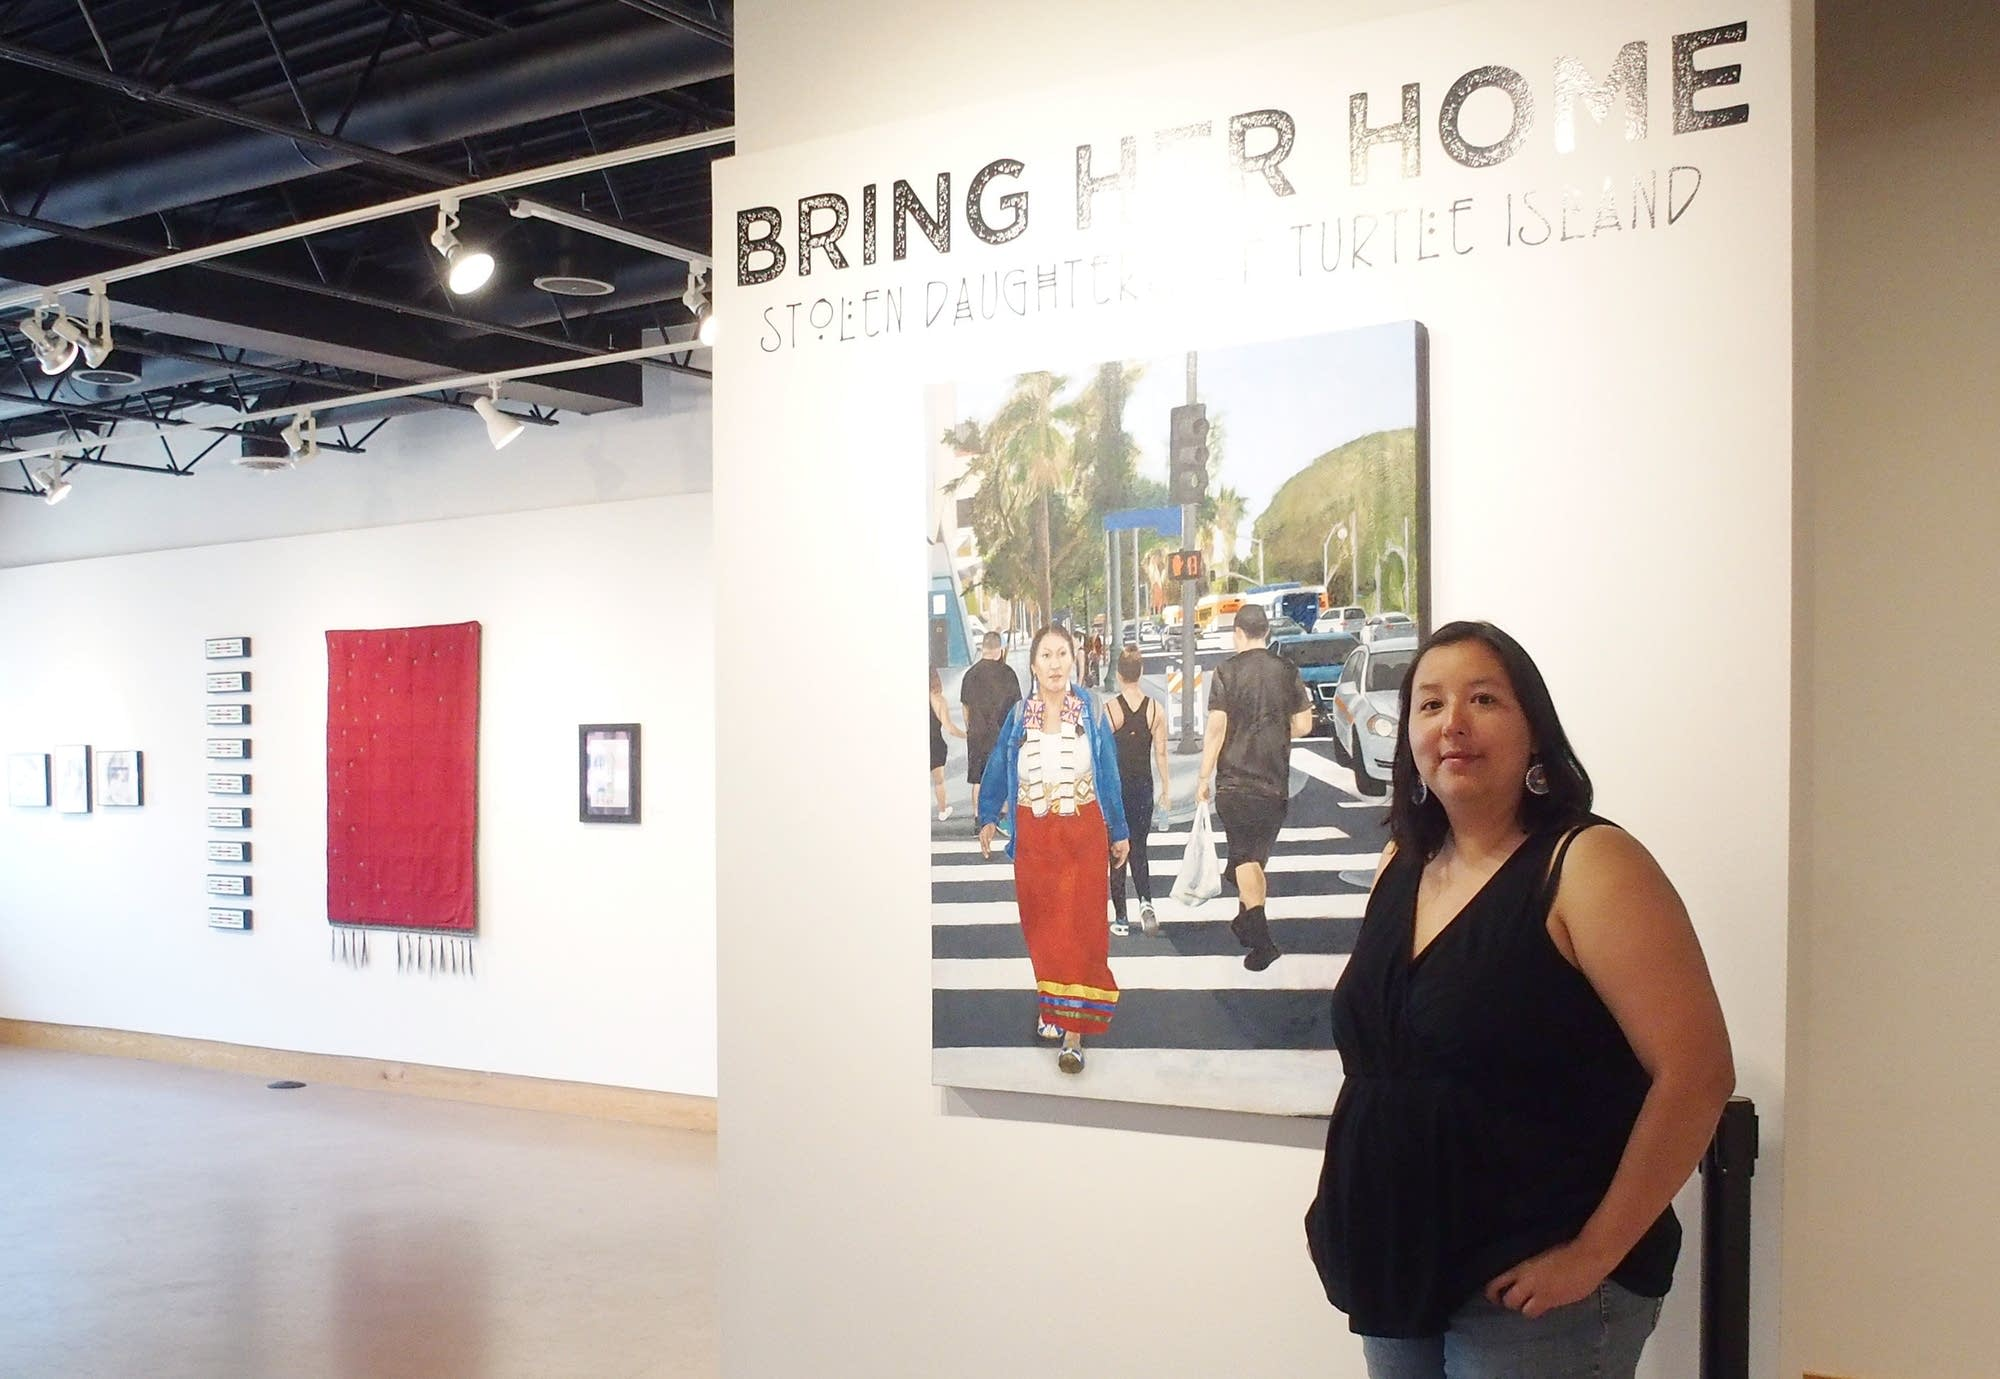 Angela Two Stars curated a show on missing and murdered indigenous women.